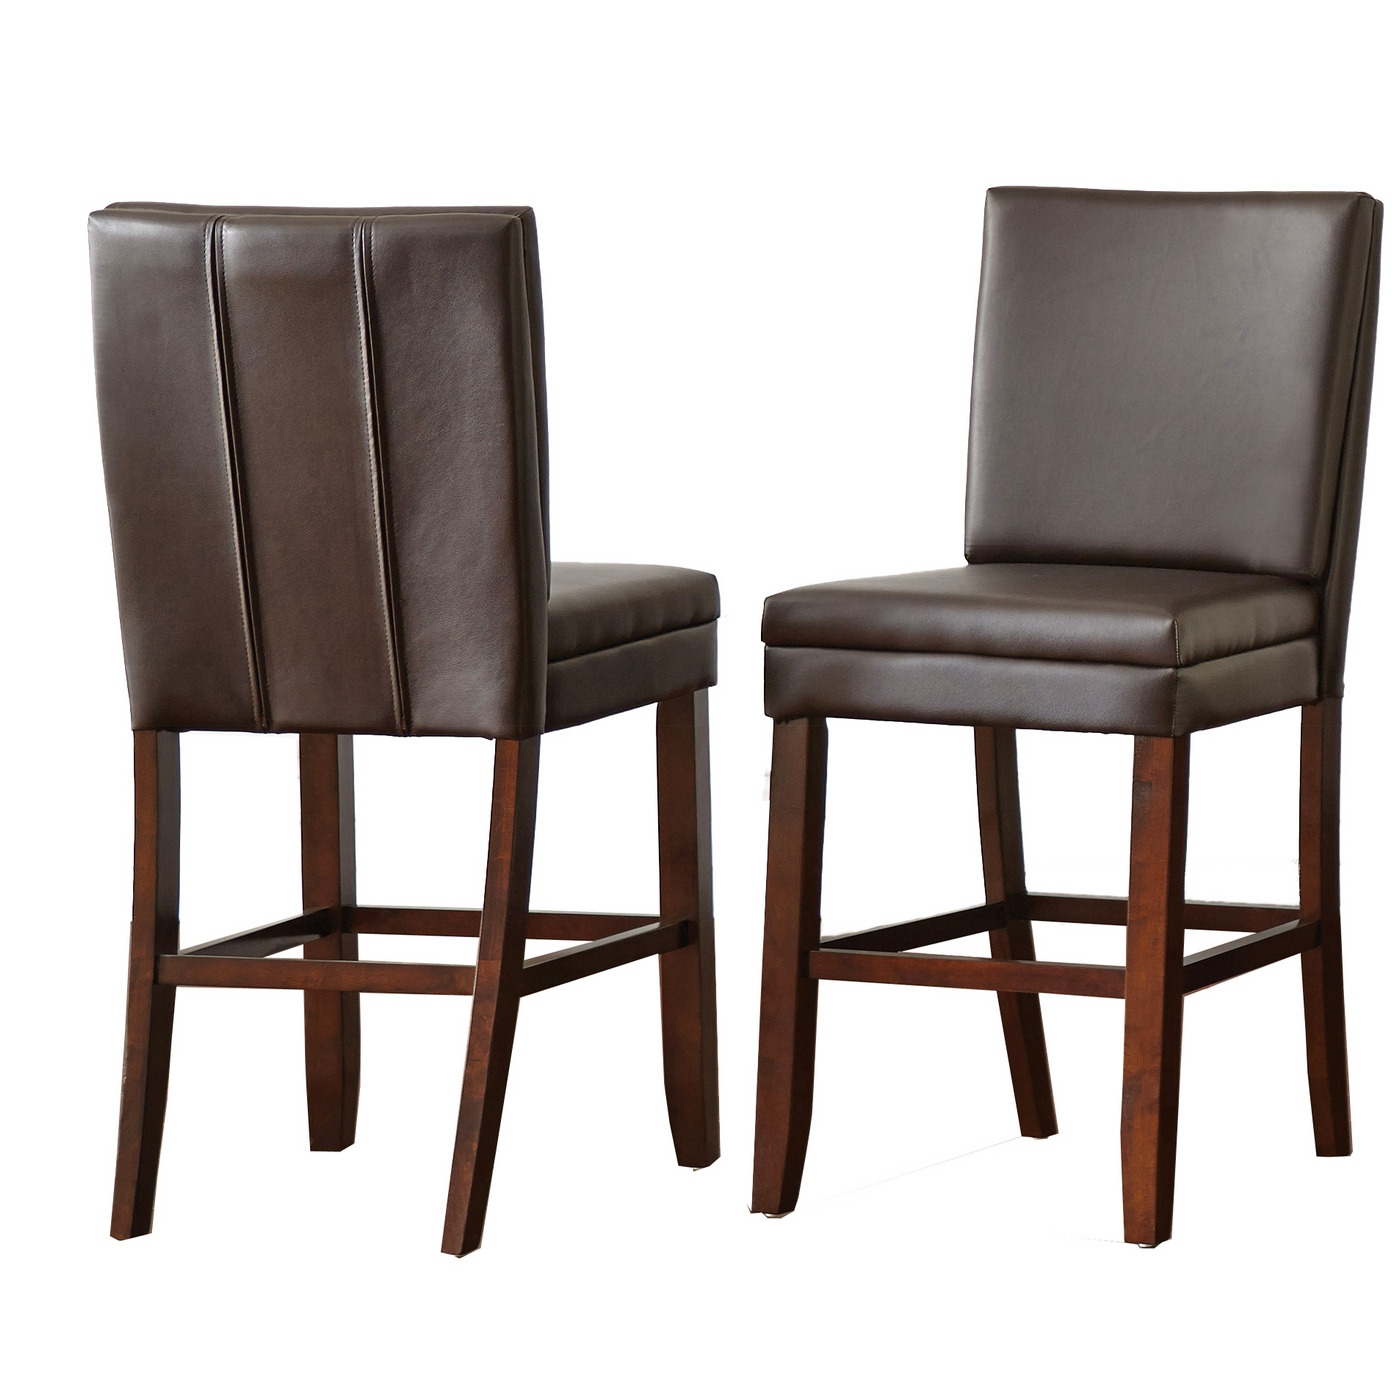 wheelchair height godrej revolving chair specification set of 2 bennett brown vinyl counter chairs with